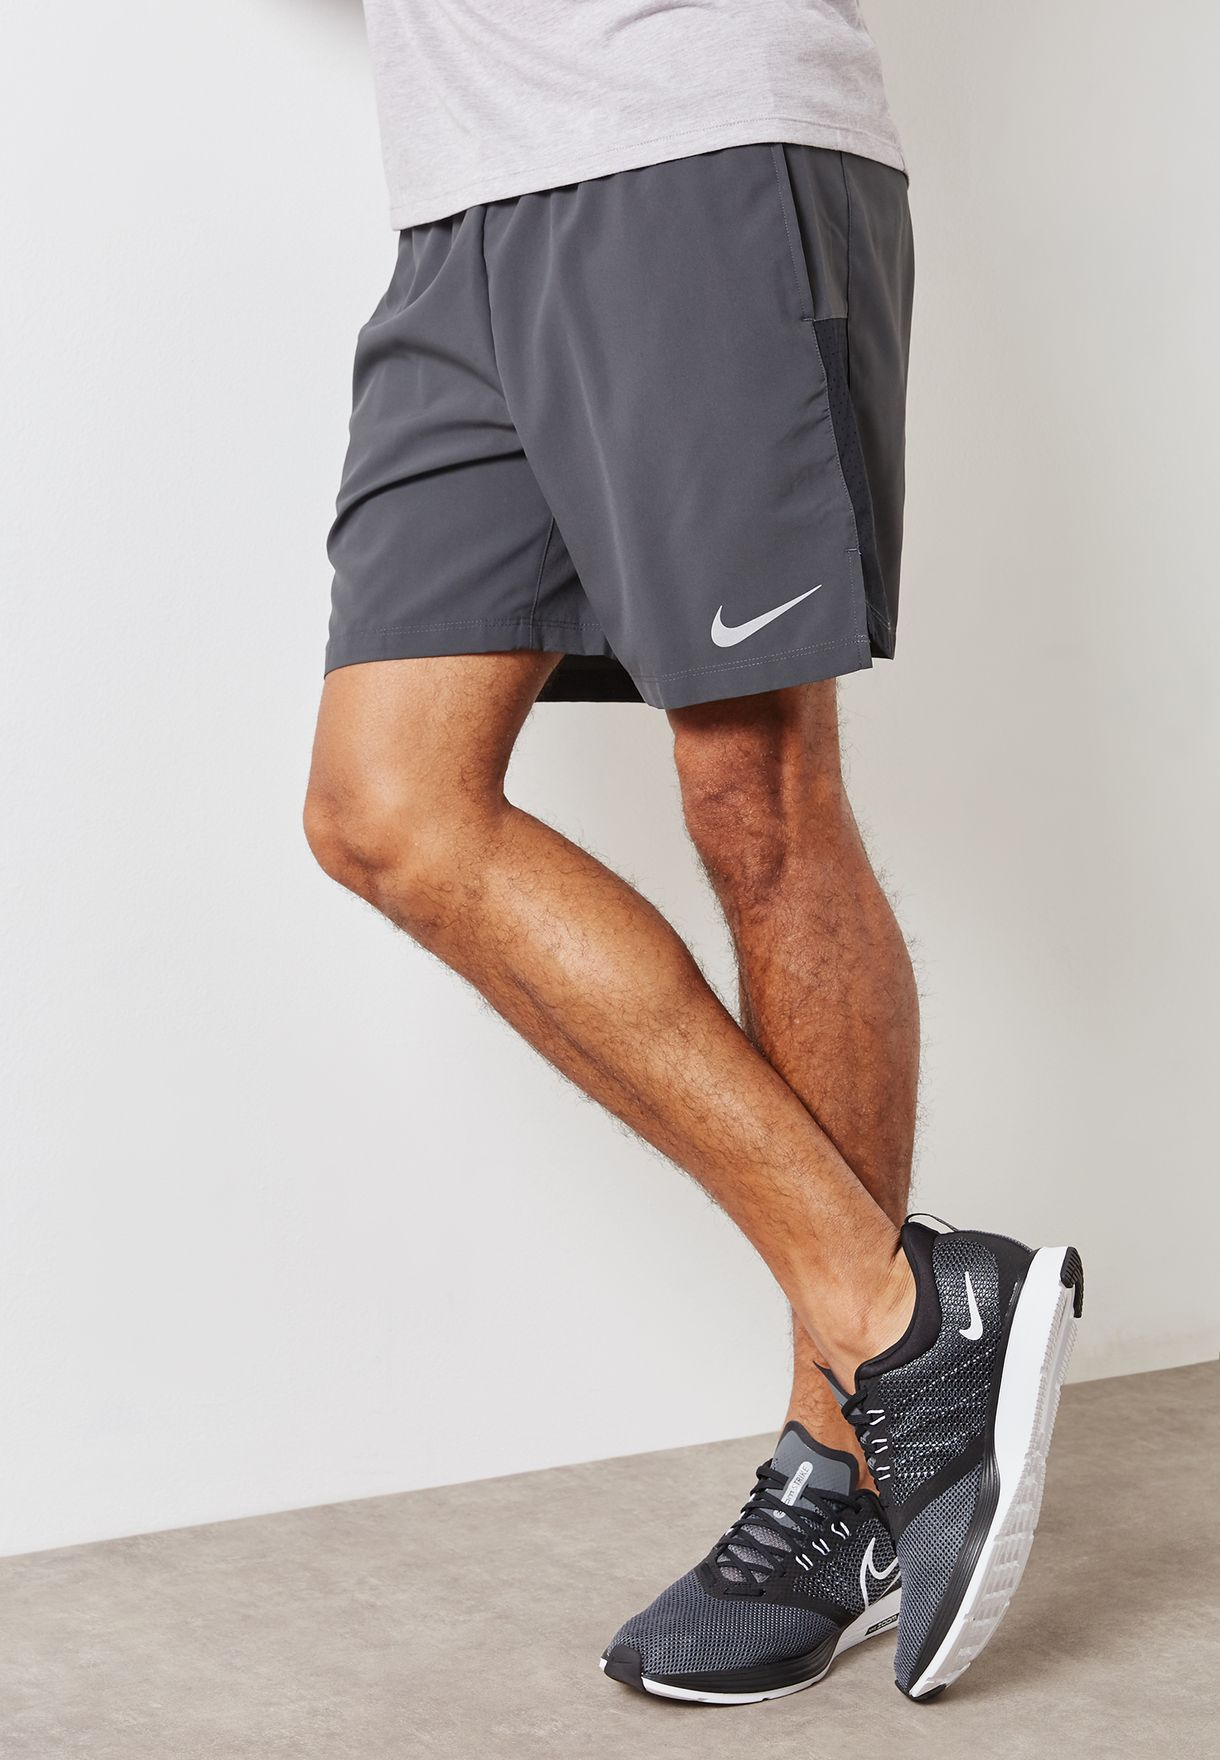 6e3ad269b85f Shop Nike grey Flex Challenger 7 quot  Shorts 856838-060 for Men in ...